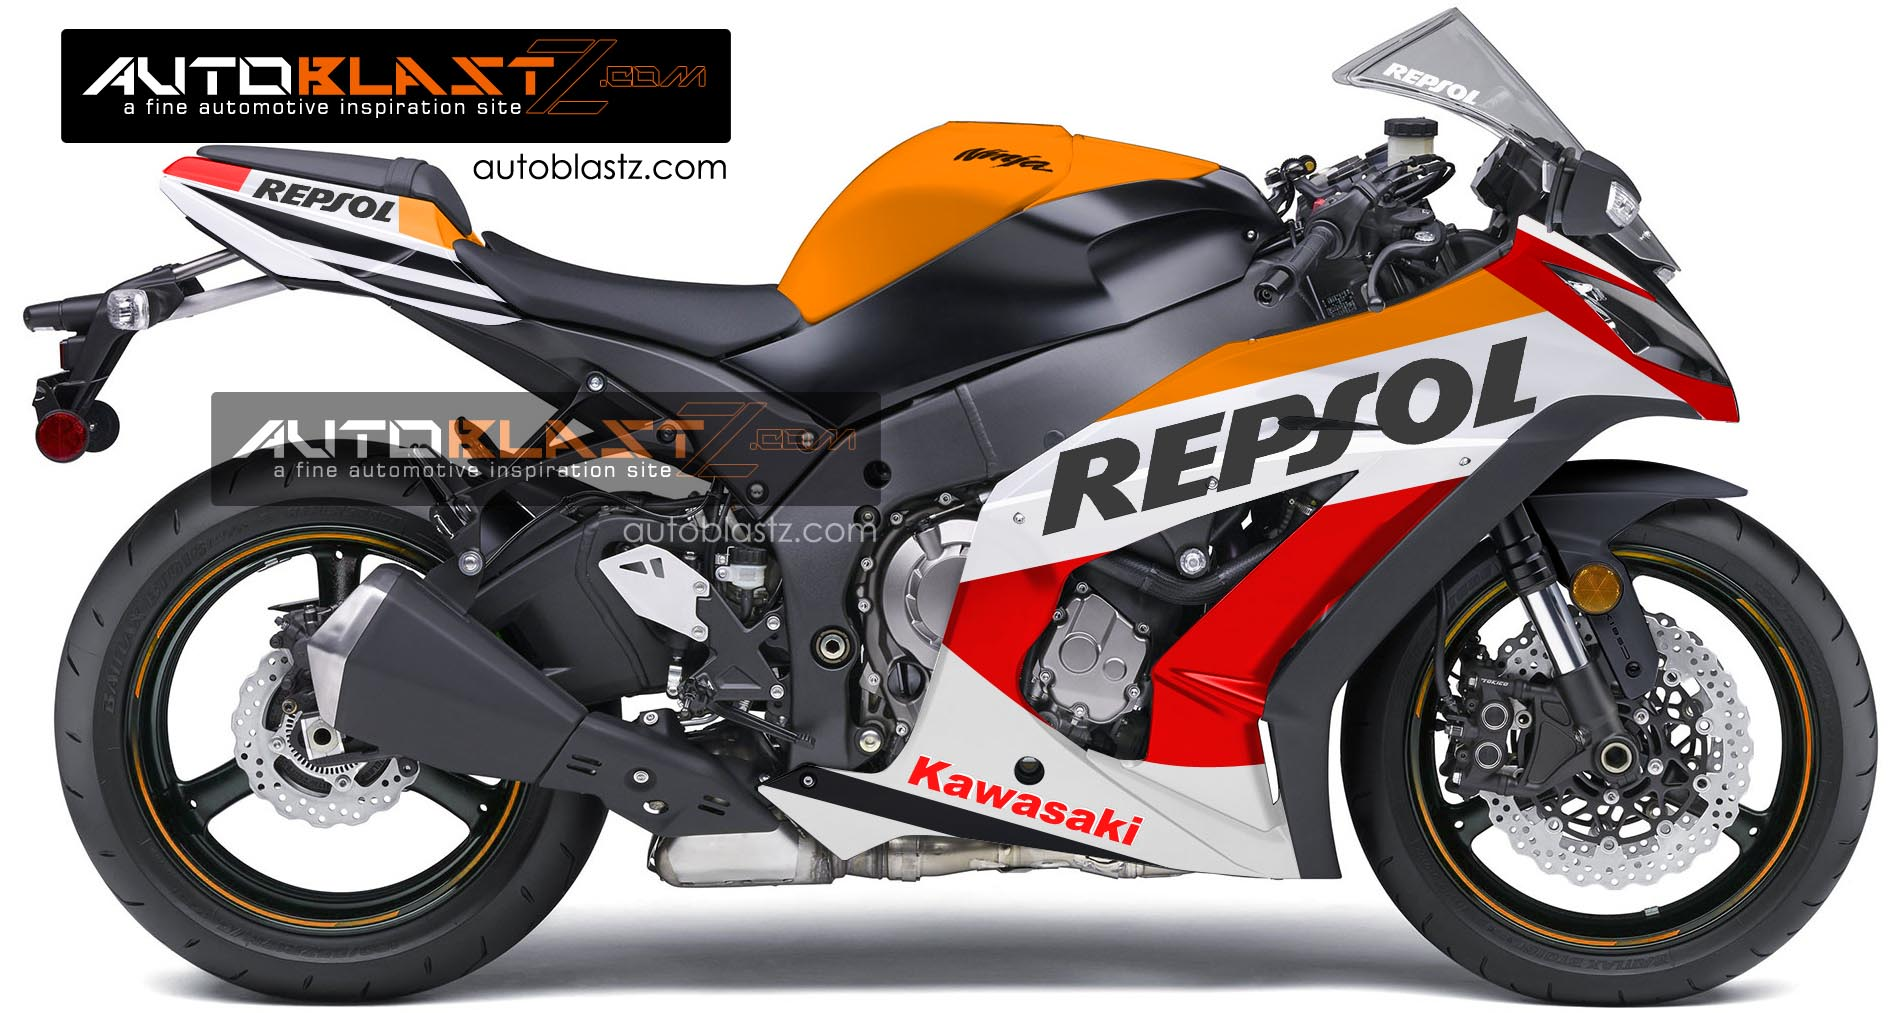 S 1000 rr with race abs dtc and shift assistant 2010 also 161452109560 together with Kawasaki Zx10r Black furthermore Yoke New 00 01 2000 2001 Kawasaki Ninja Zx12r Real Carbon Fiber in addition Sharkskinz Race Lower Zx10 2008 2010. on 2010 kawasaki ninja zx10r fairings